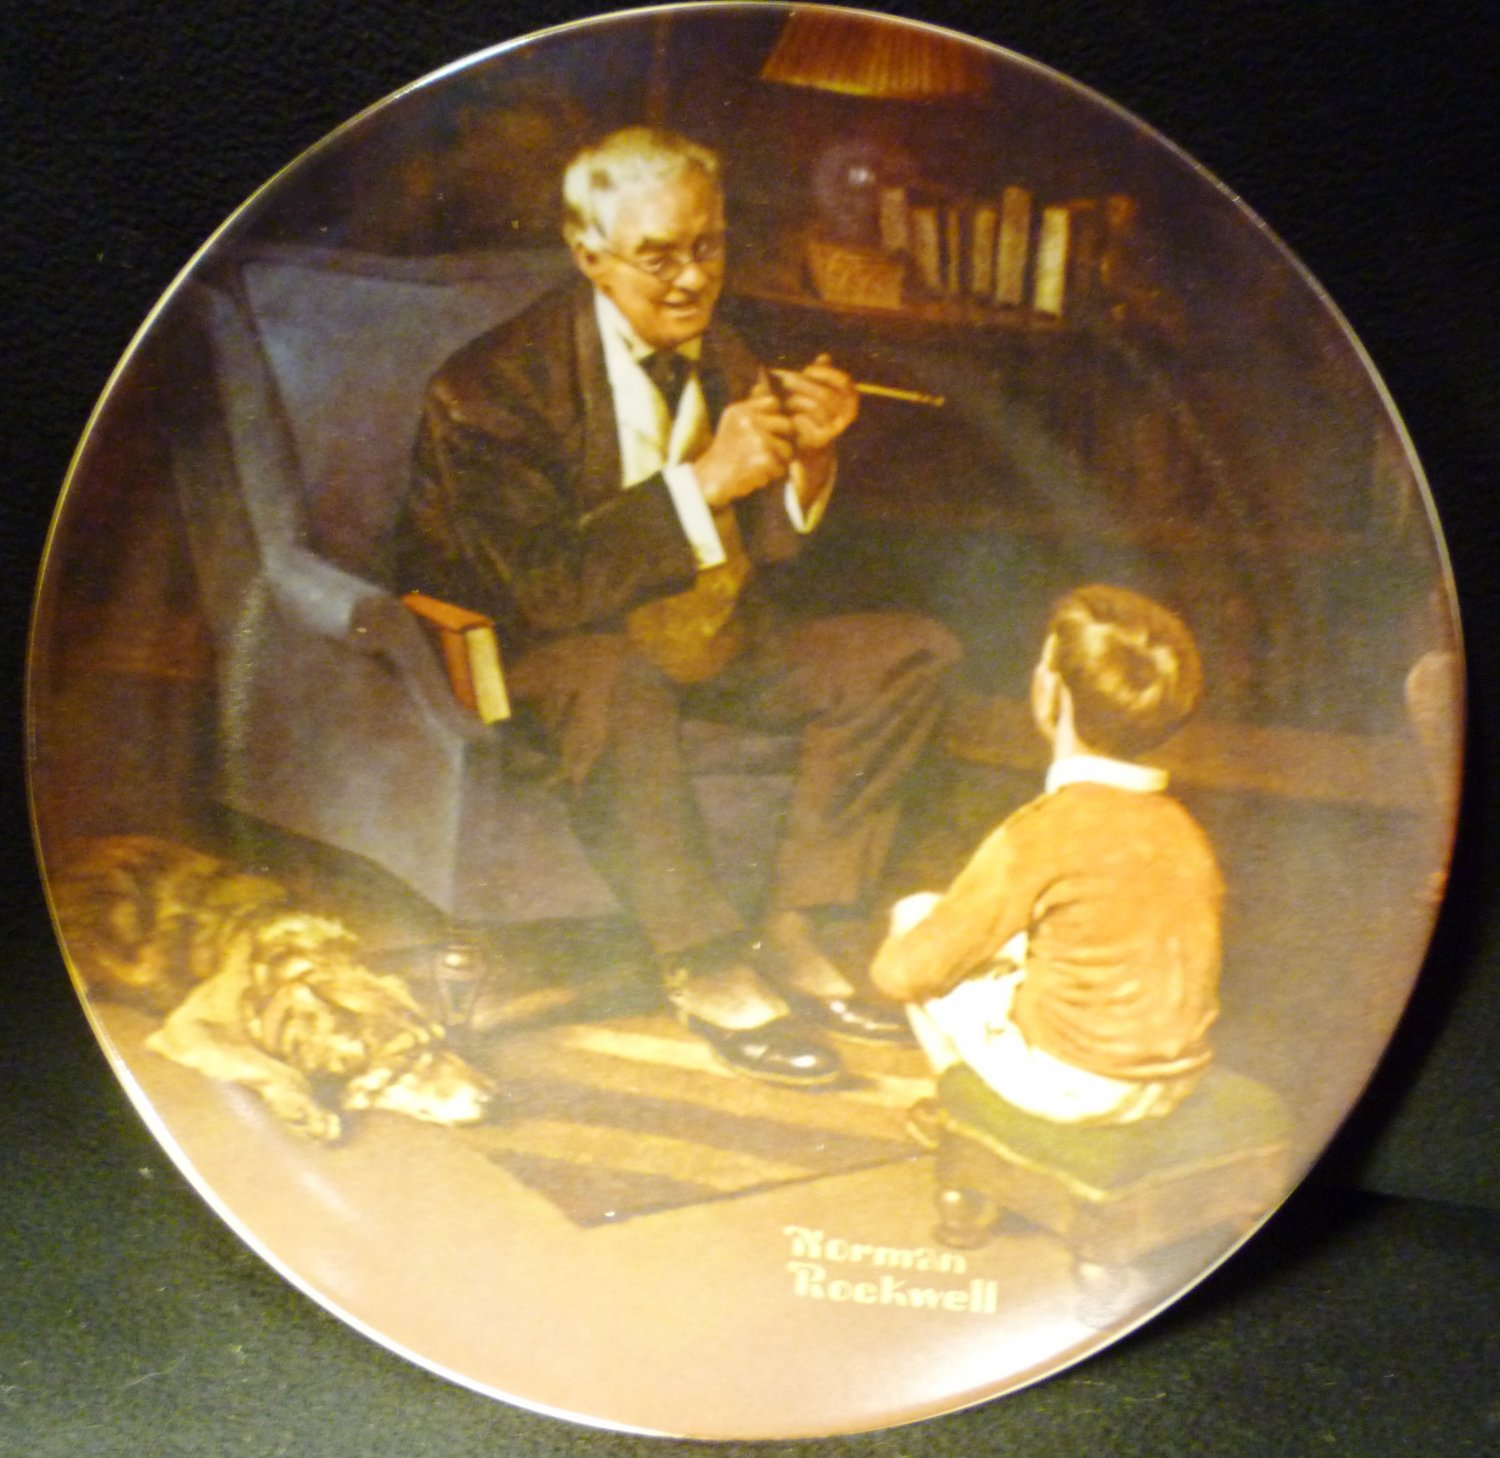 KNOWLES FINE CHINA PLATE 'THE TYCOON' NORMAN ROCKWELL 1982 NMB